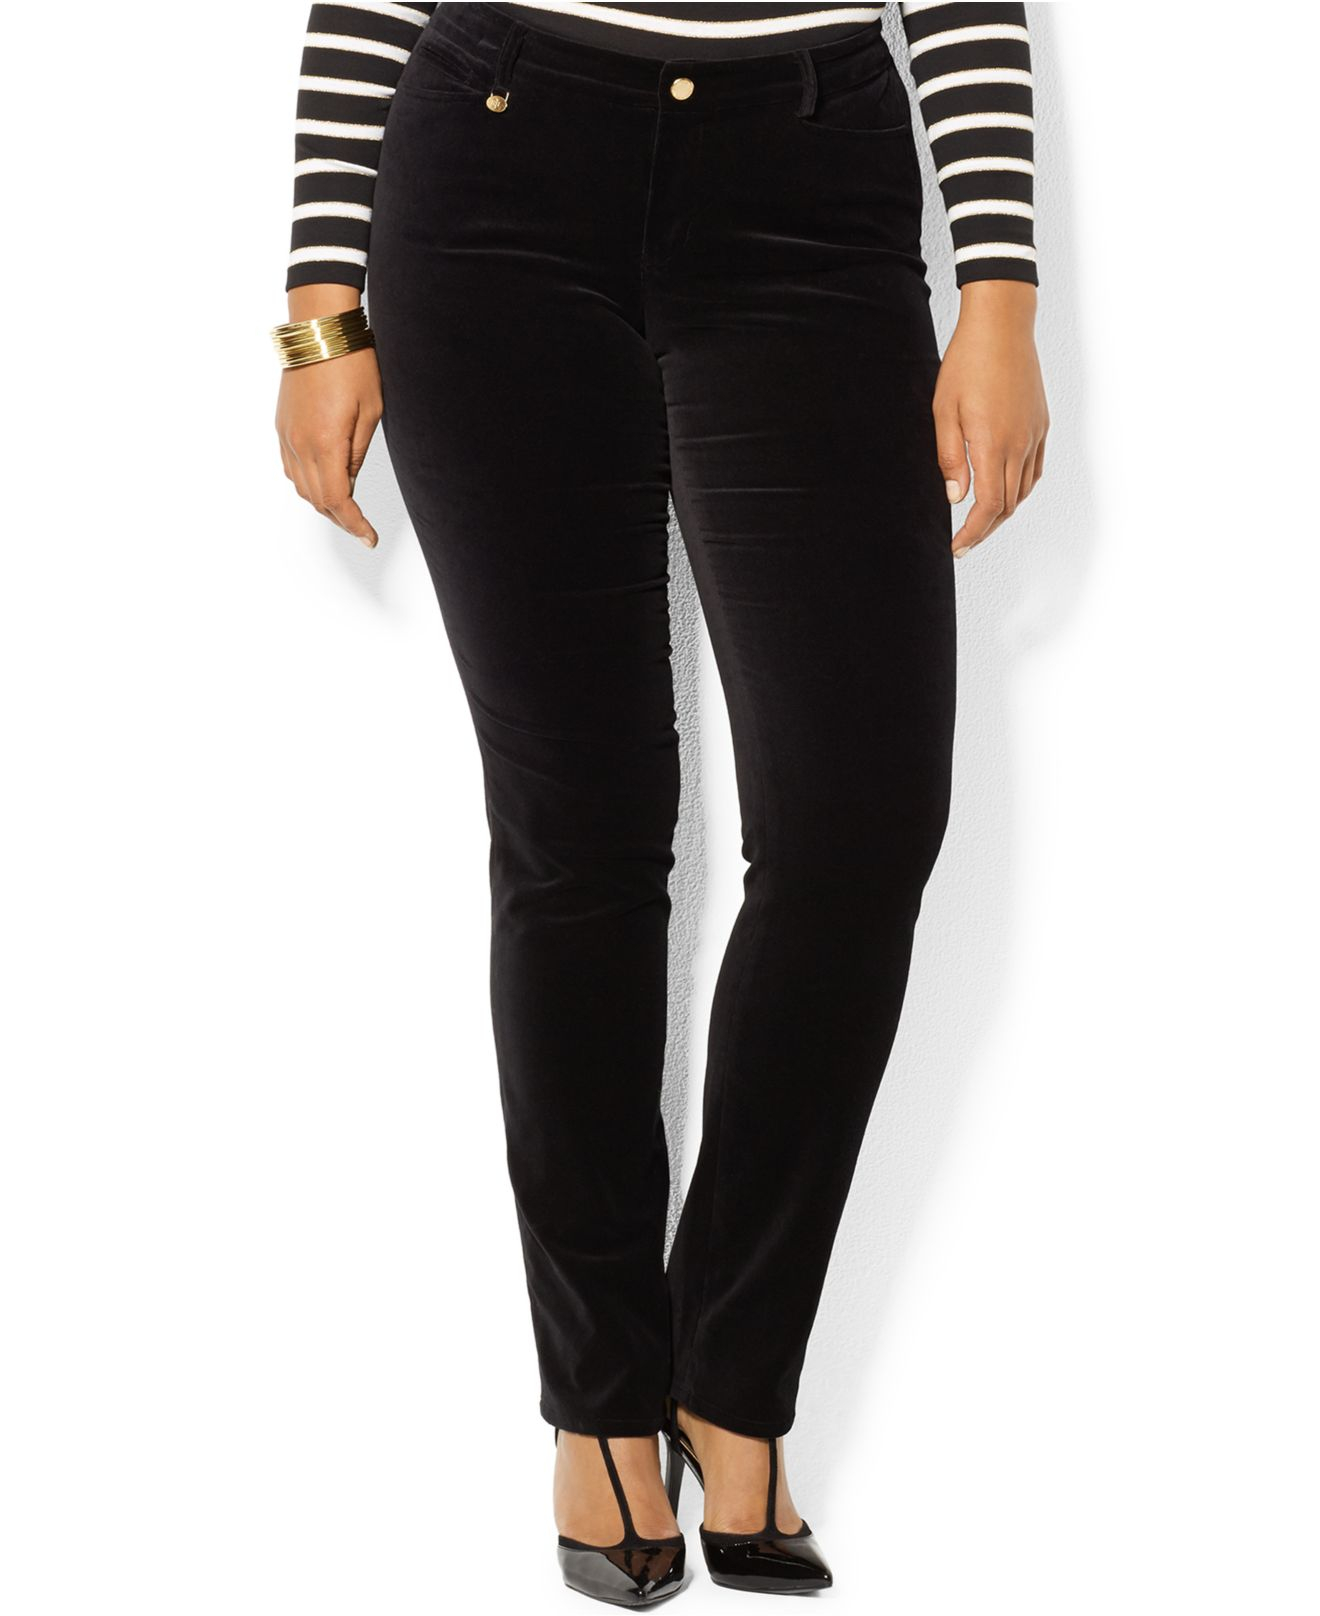 Plus Size Black Skinny Dress Pants | Saddha